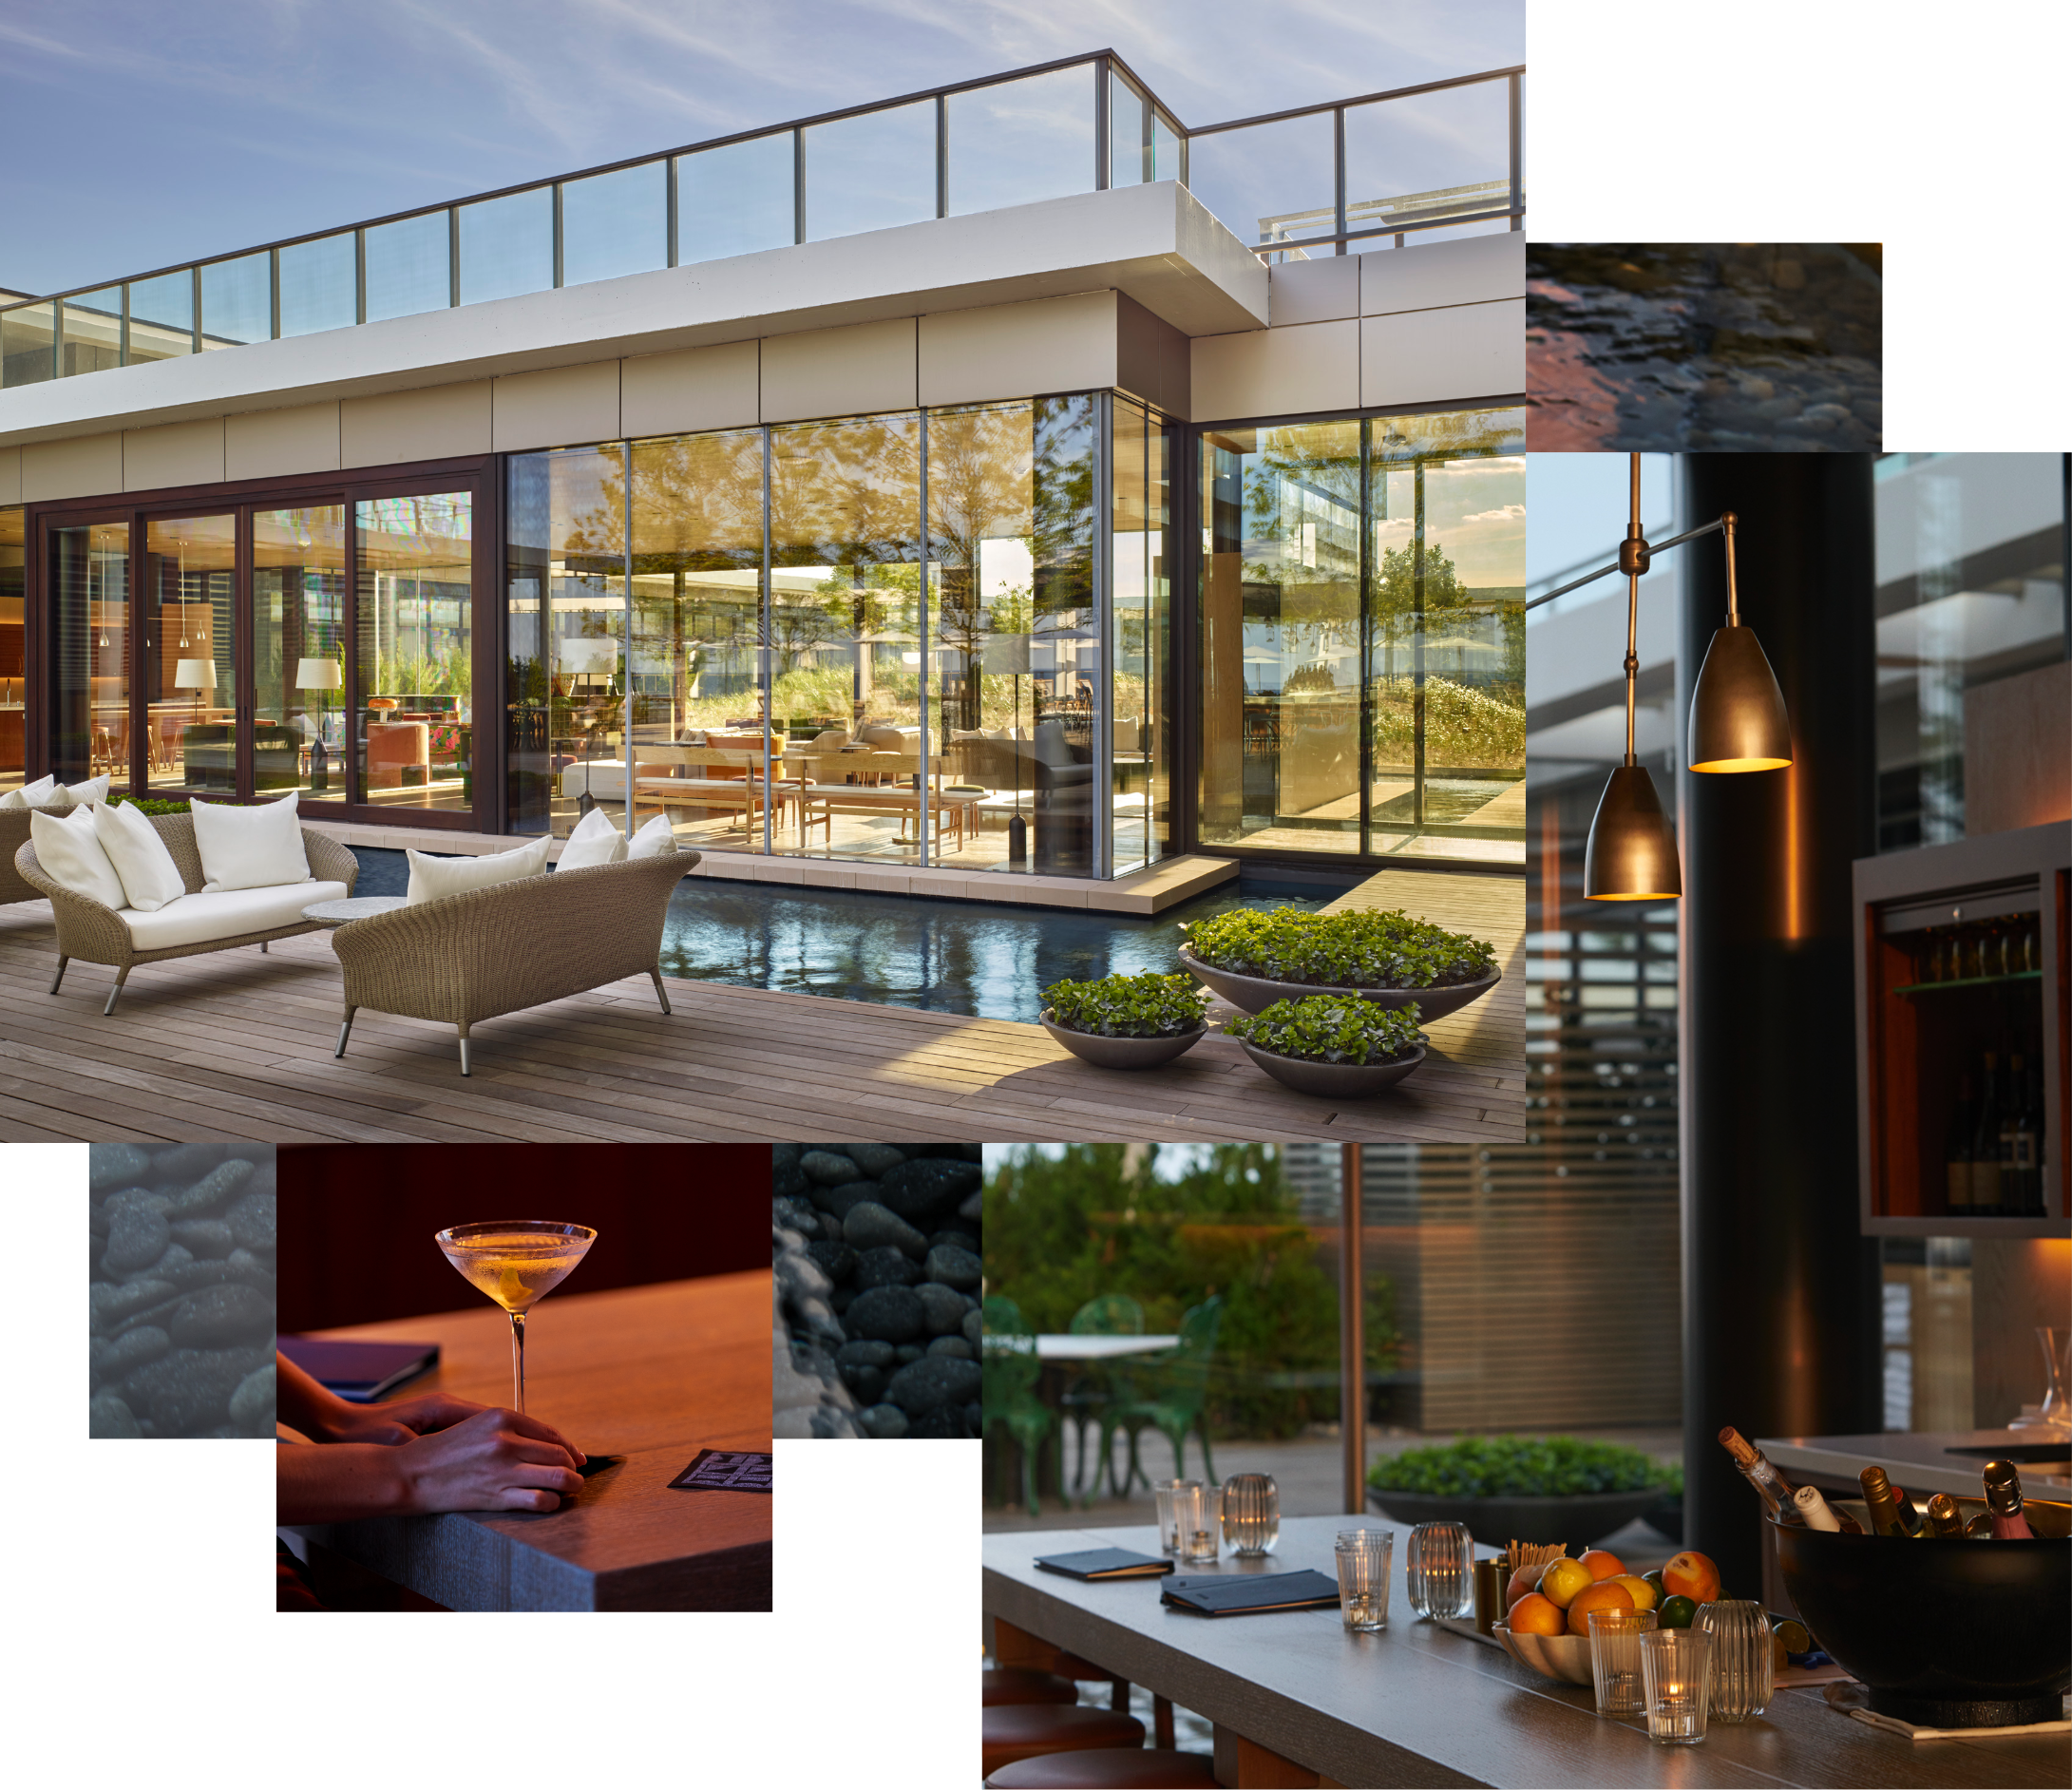 the drawing room - The heart of the hotel. Looking through floor to ceiling glass onto the pool garden and terrace, the Drawing Room serves as part living room, part bar, part music room. An all-day retreat for any taste.